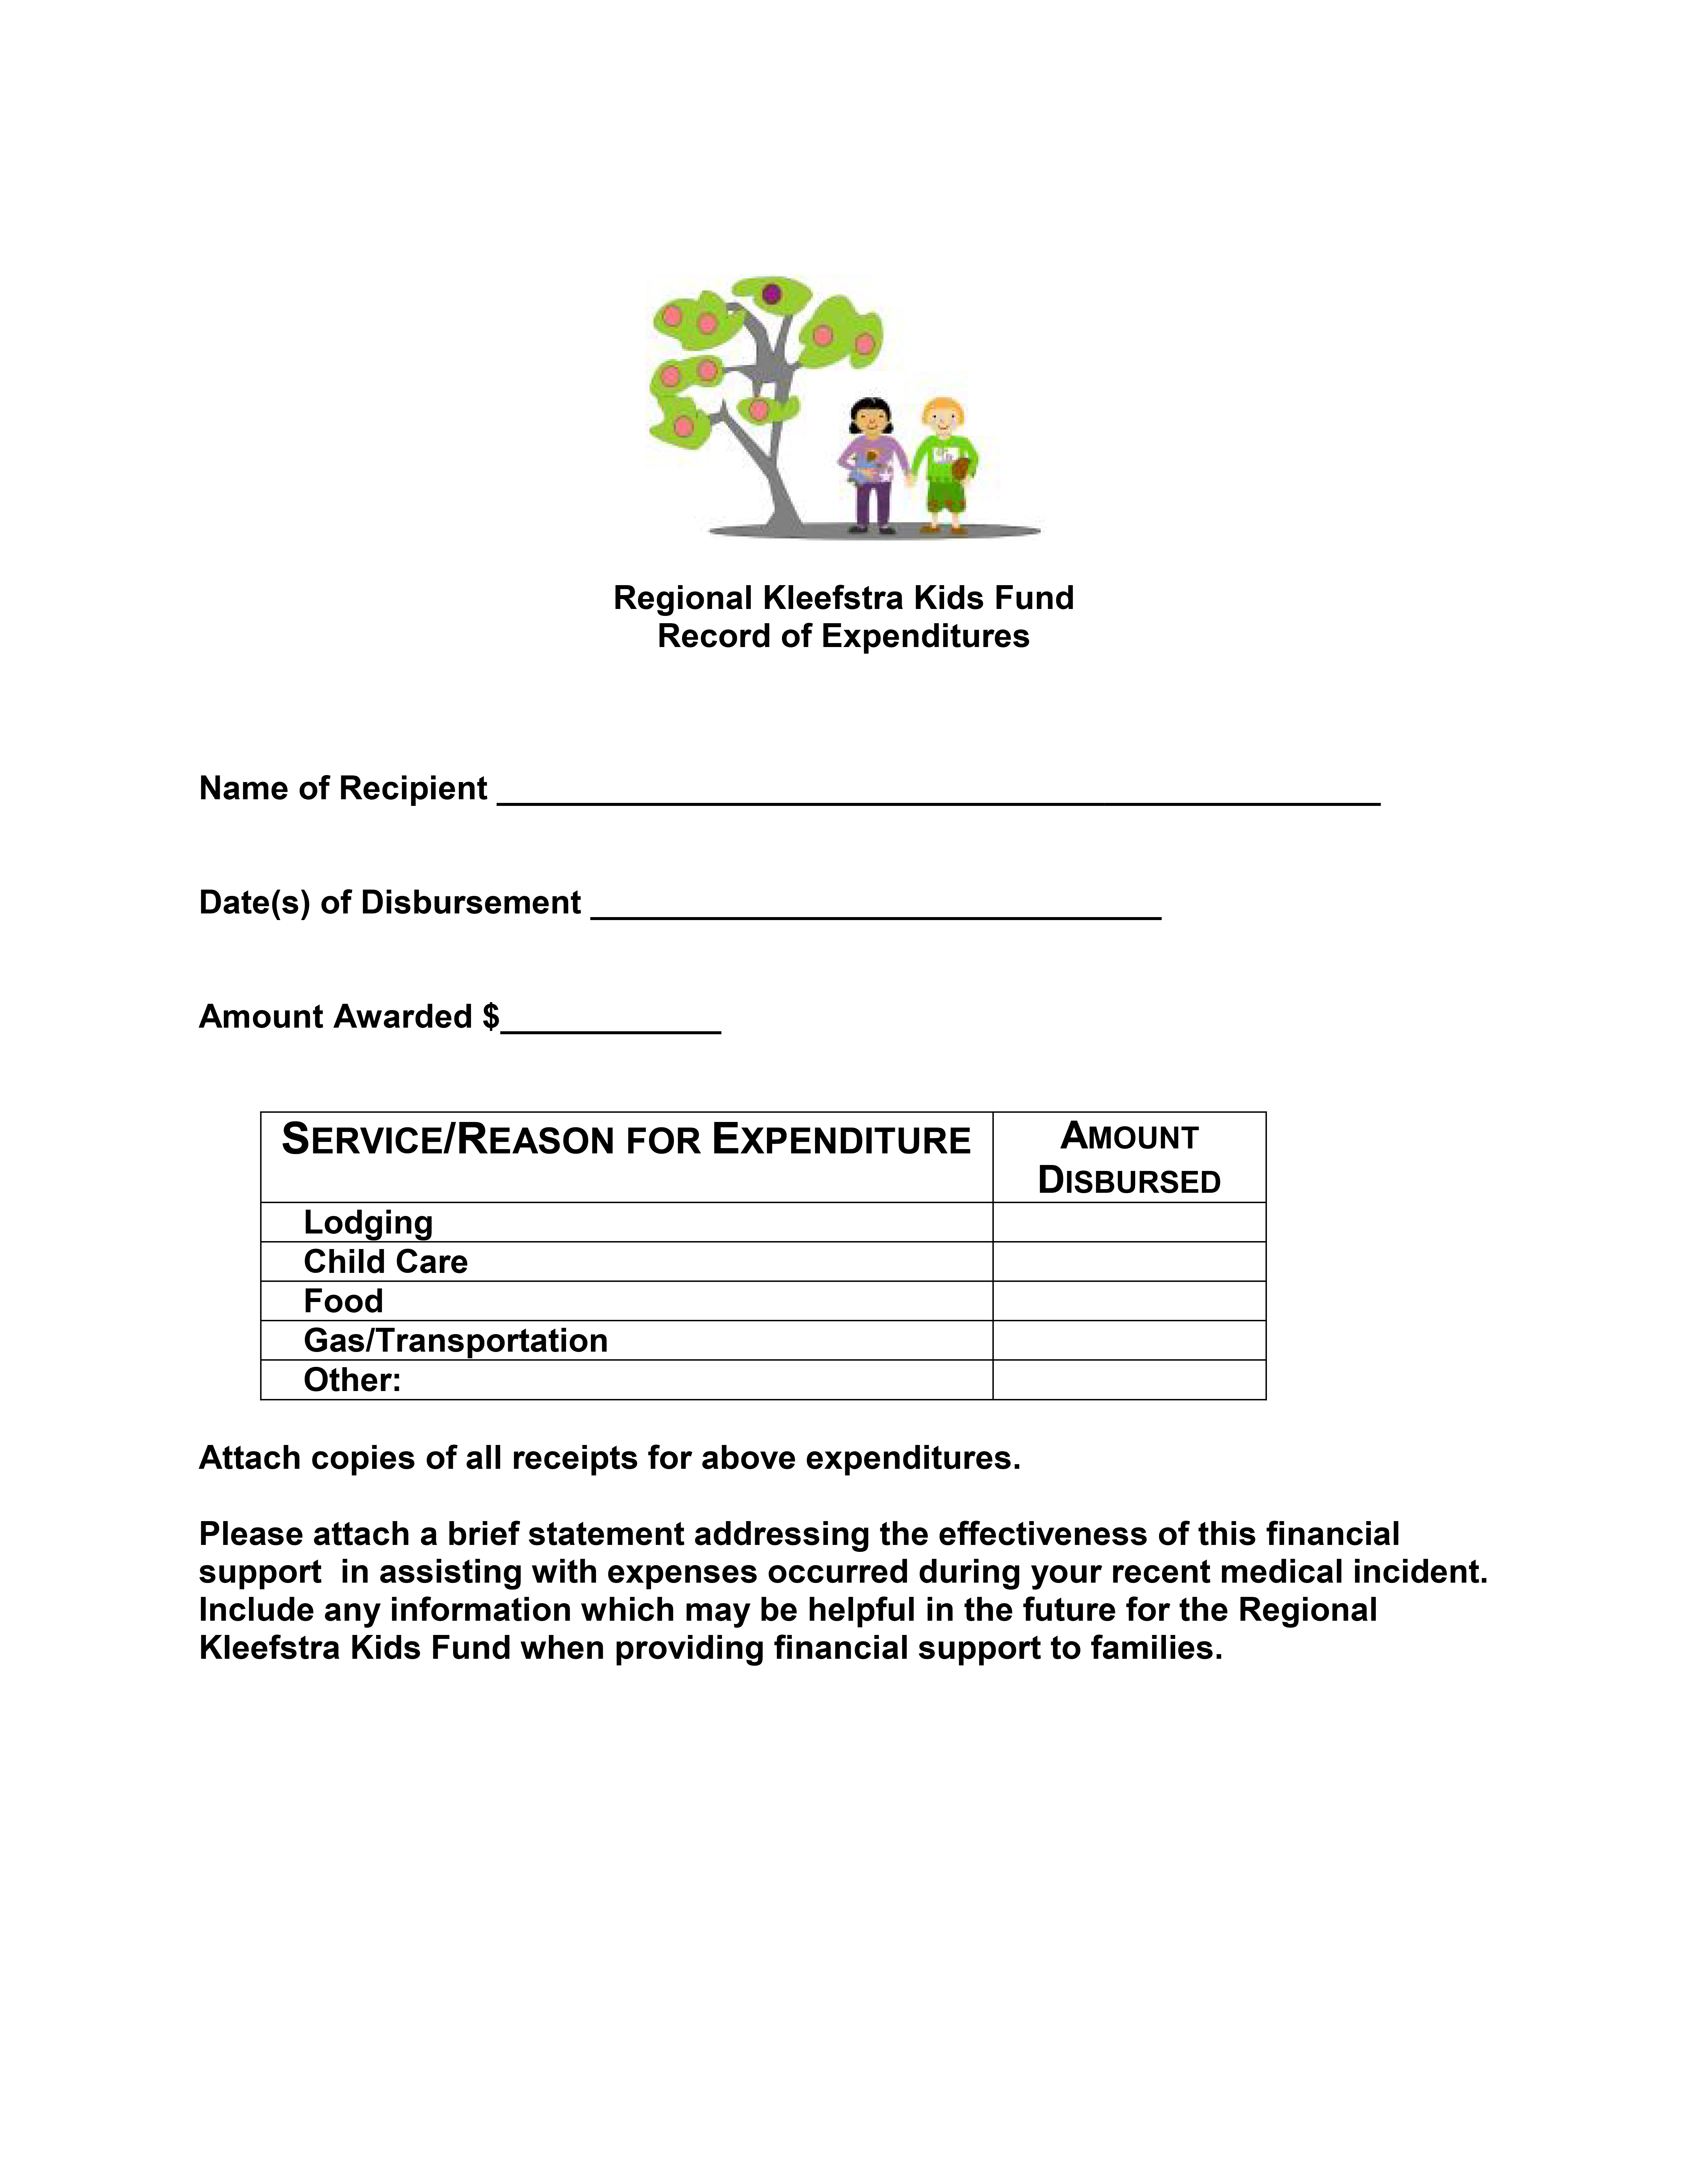 Reimbursement Form – Reimbursement Form